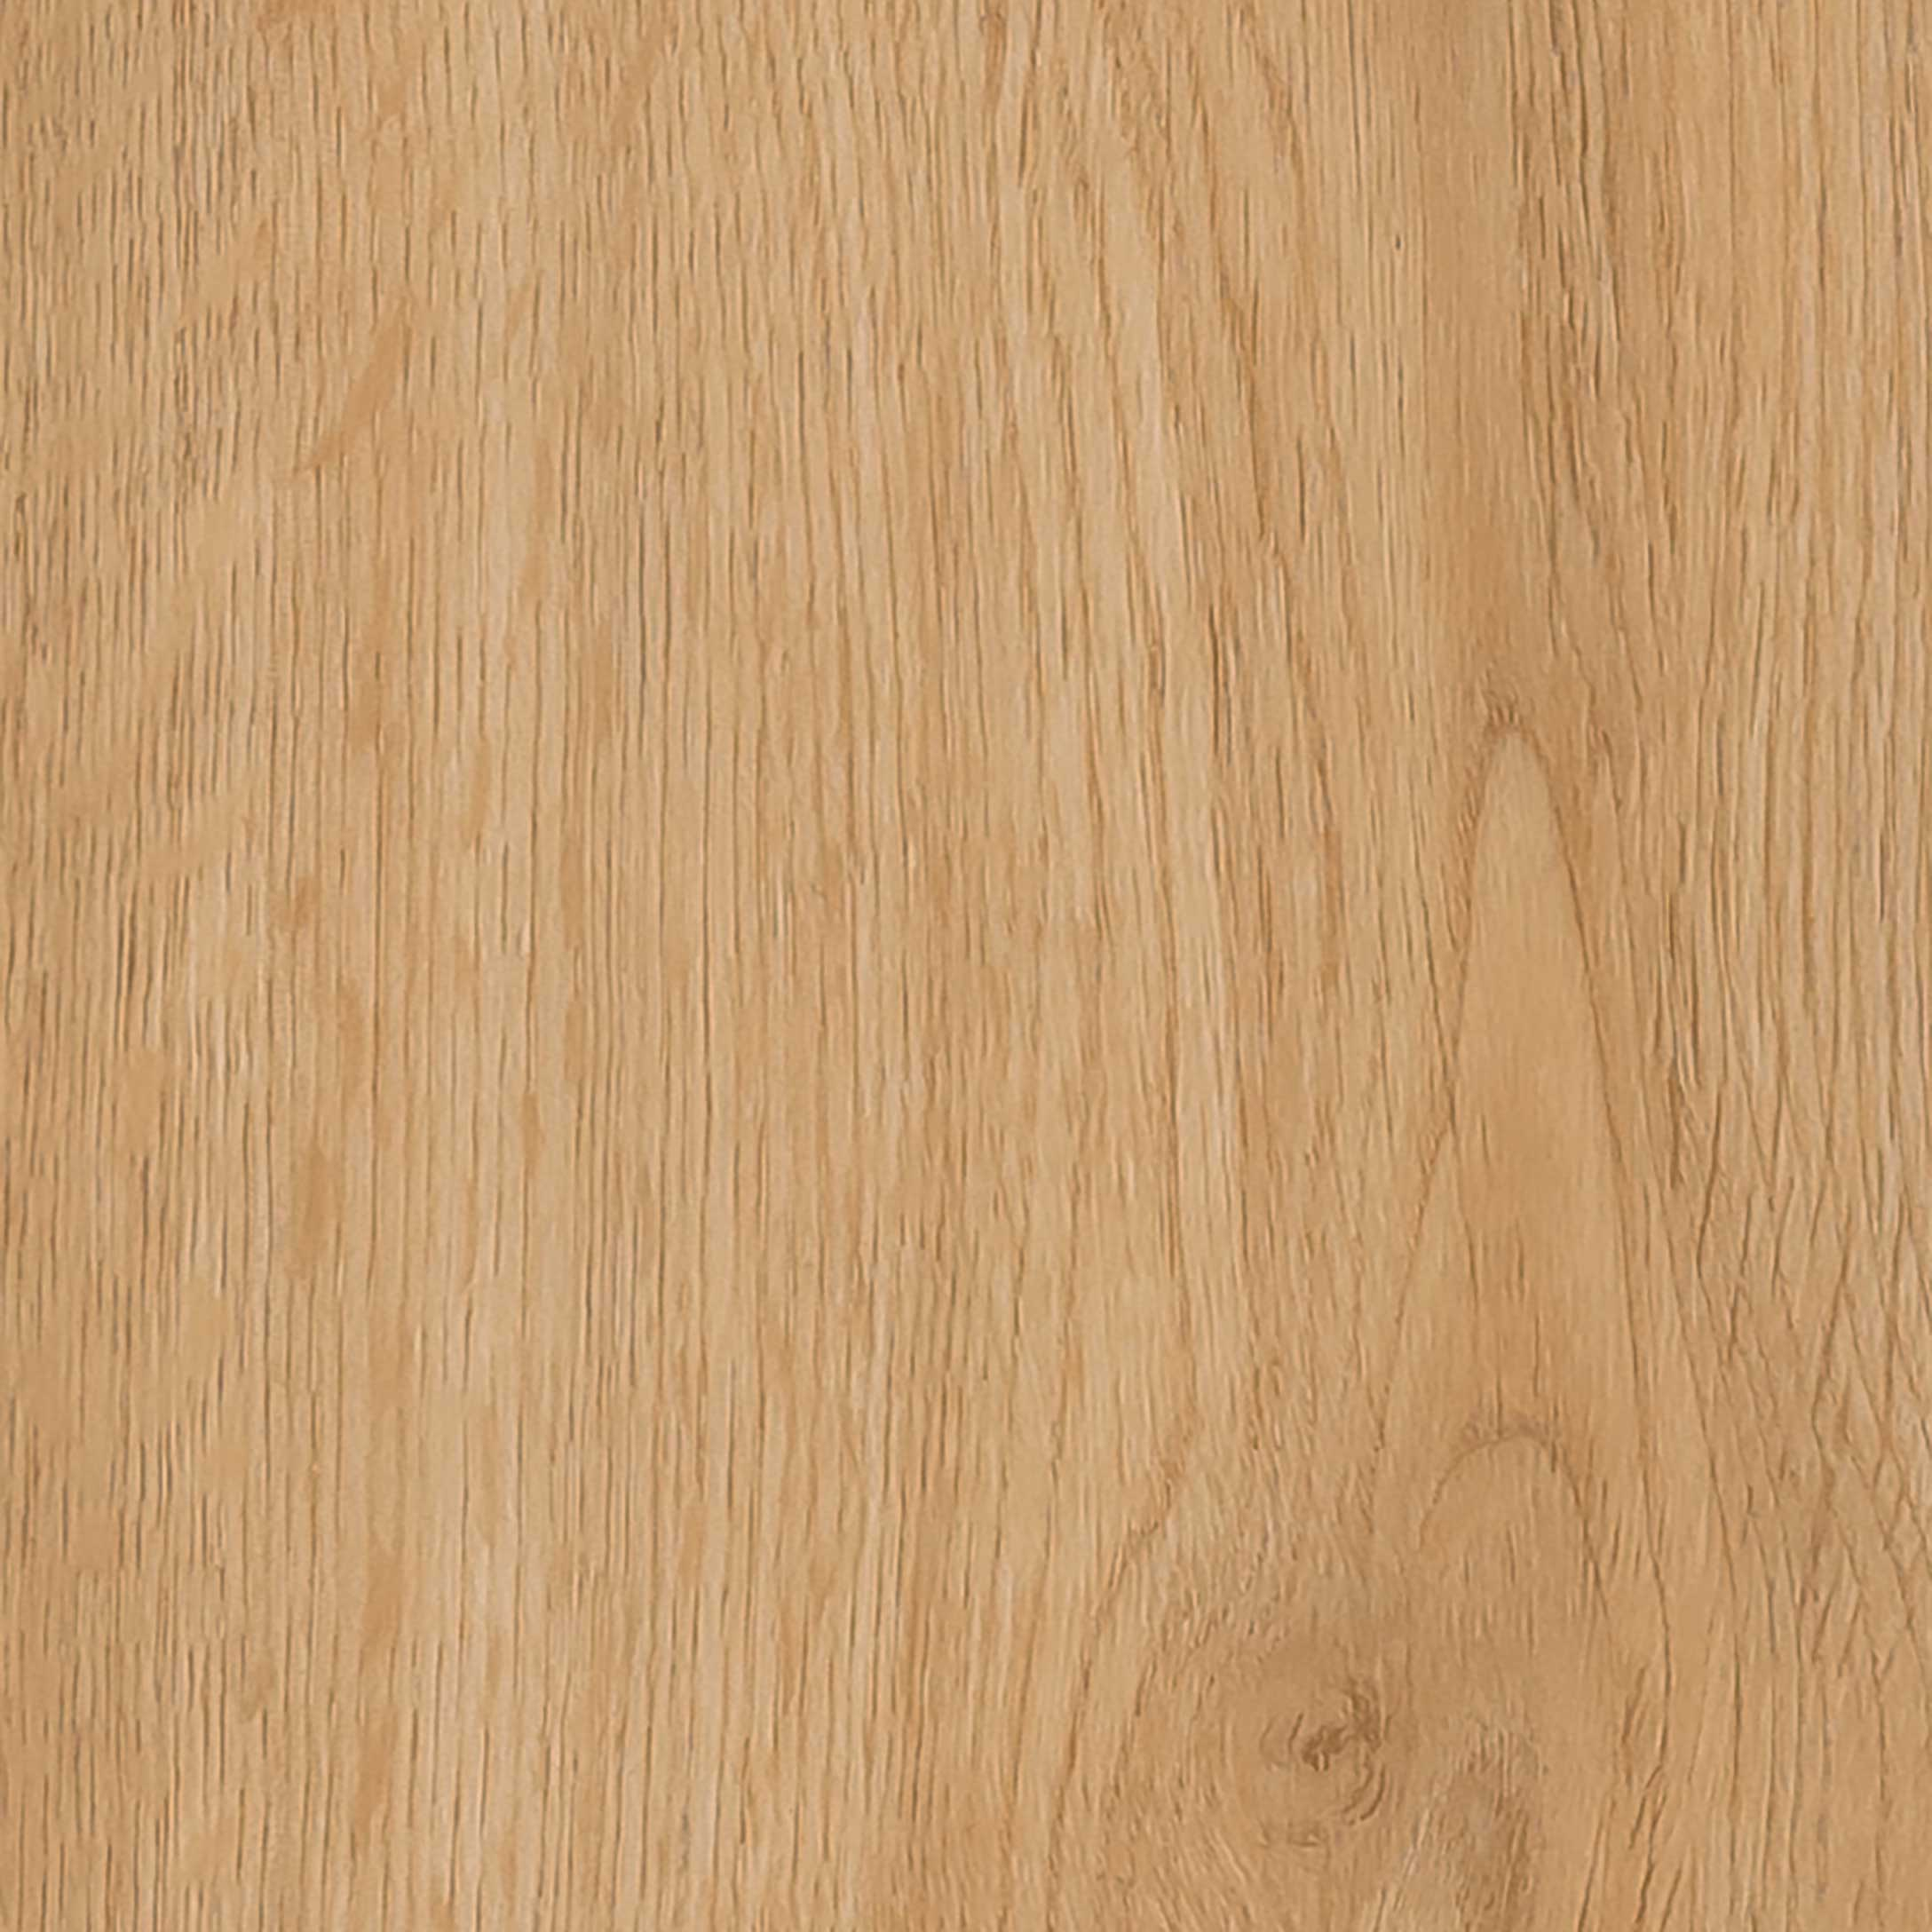 French Oak, blond 2834